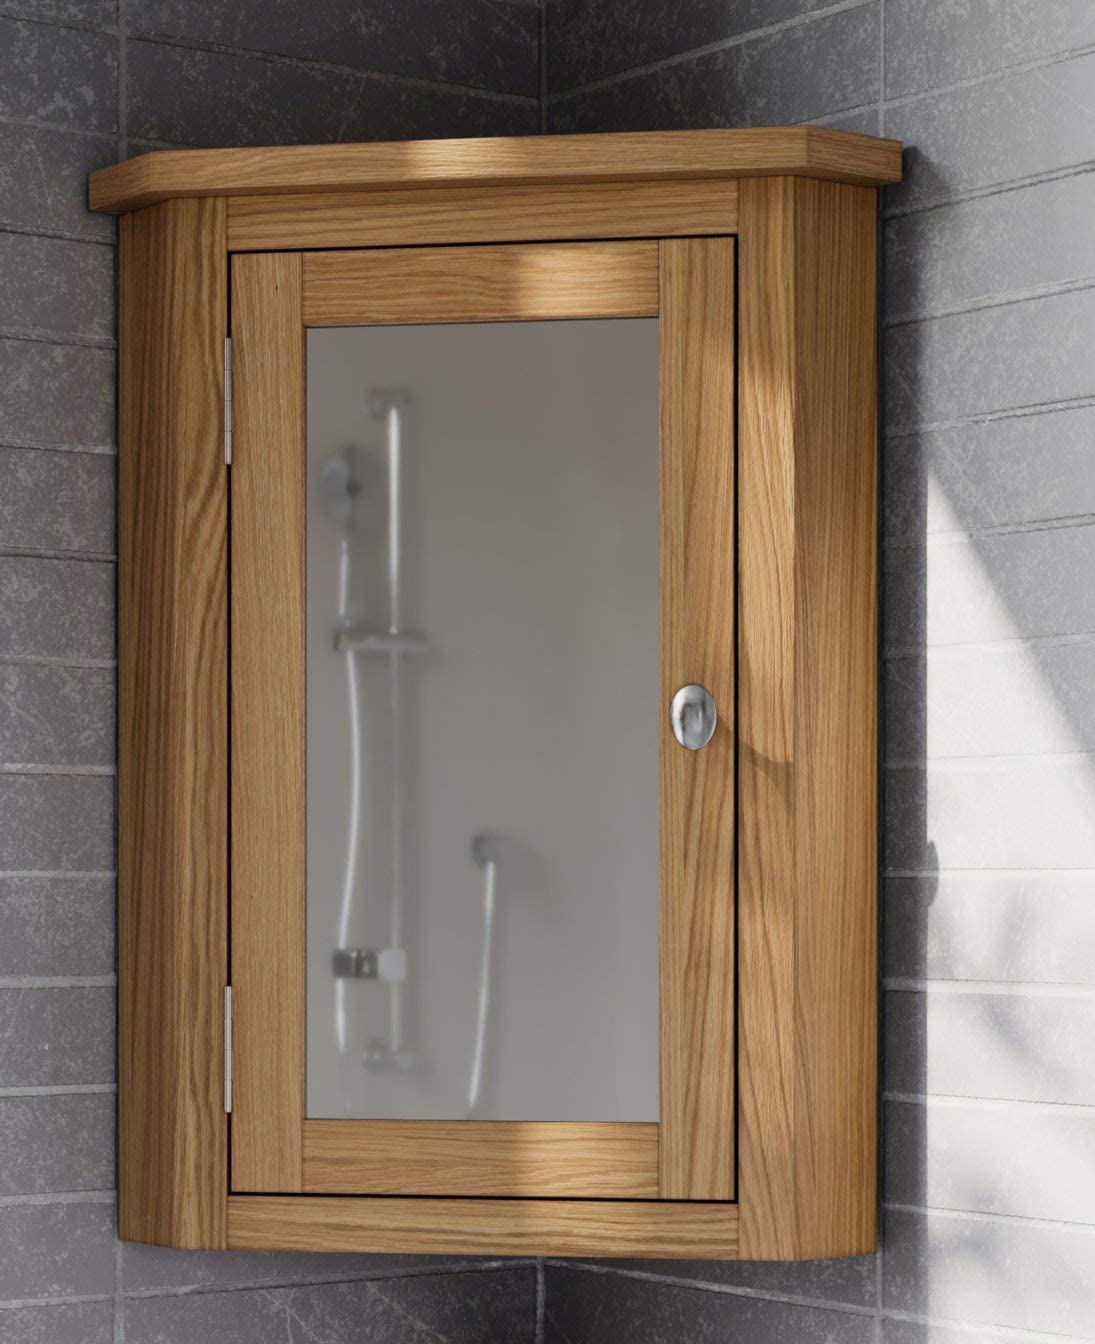 Hallowood Waverly Corner Bathroom Cabinet In Light Oak Finish Solid Wooden Wall Mounted Storage Mirror Cupboard Wav Bcab453 Amazon Co Uk Kitchen Home